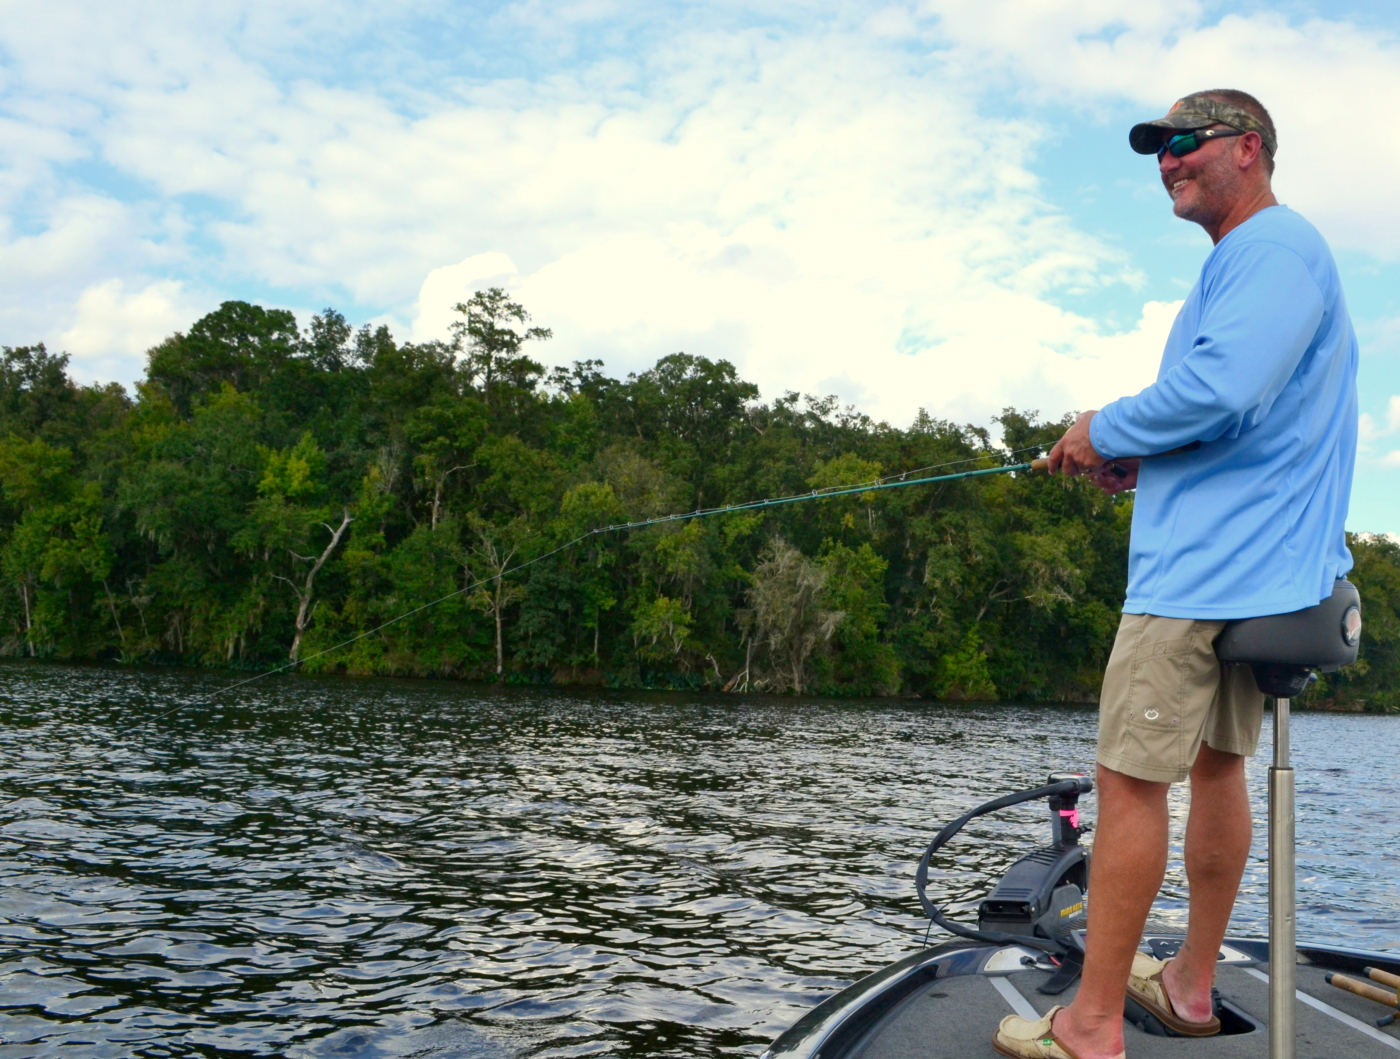 A man fishing on the bow of a bass boat.